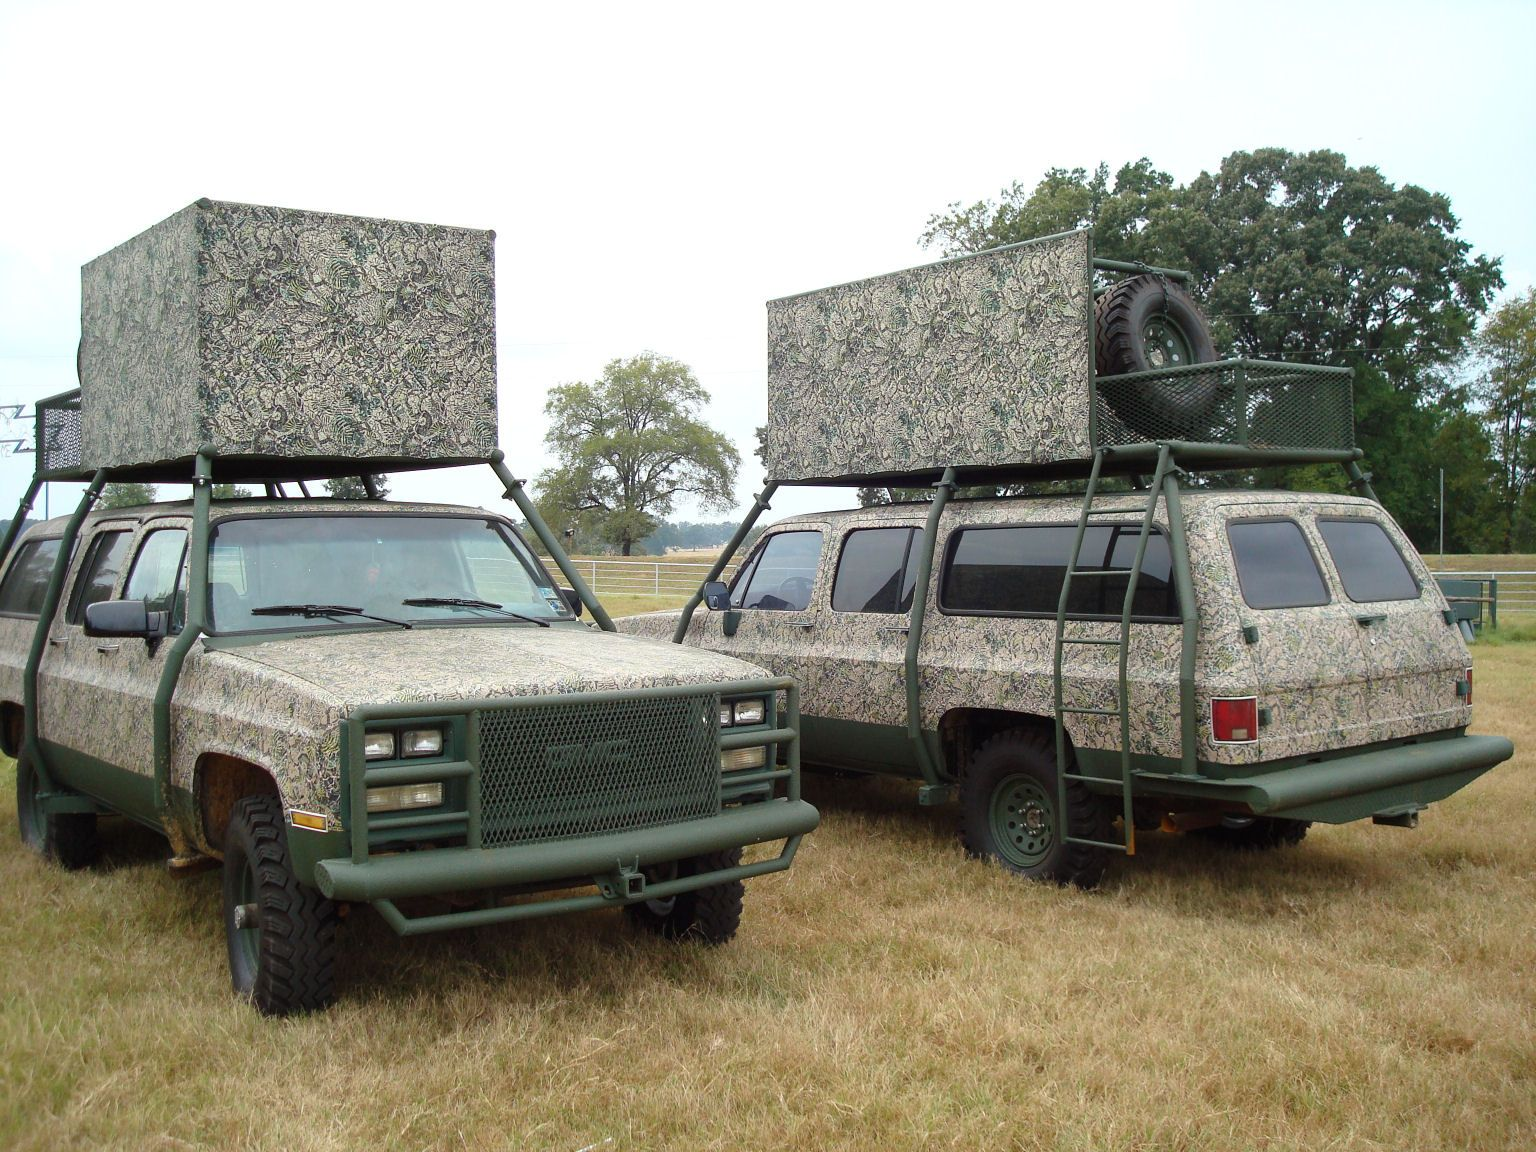 A hunting truck just for hunting